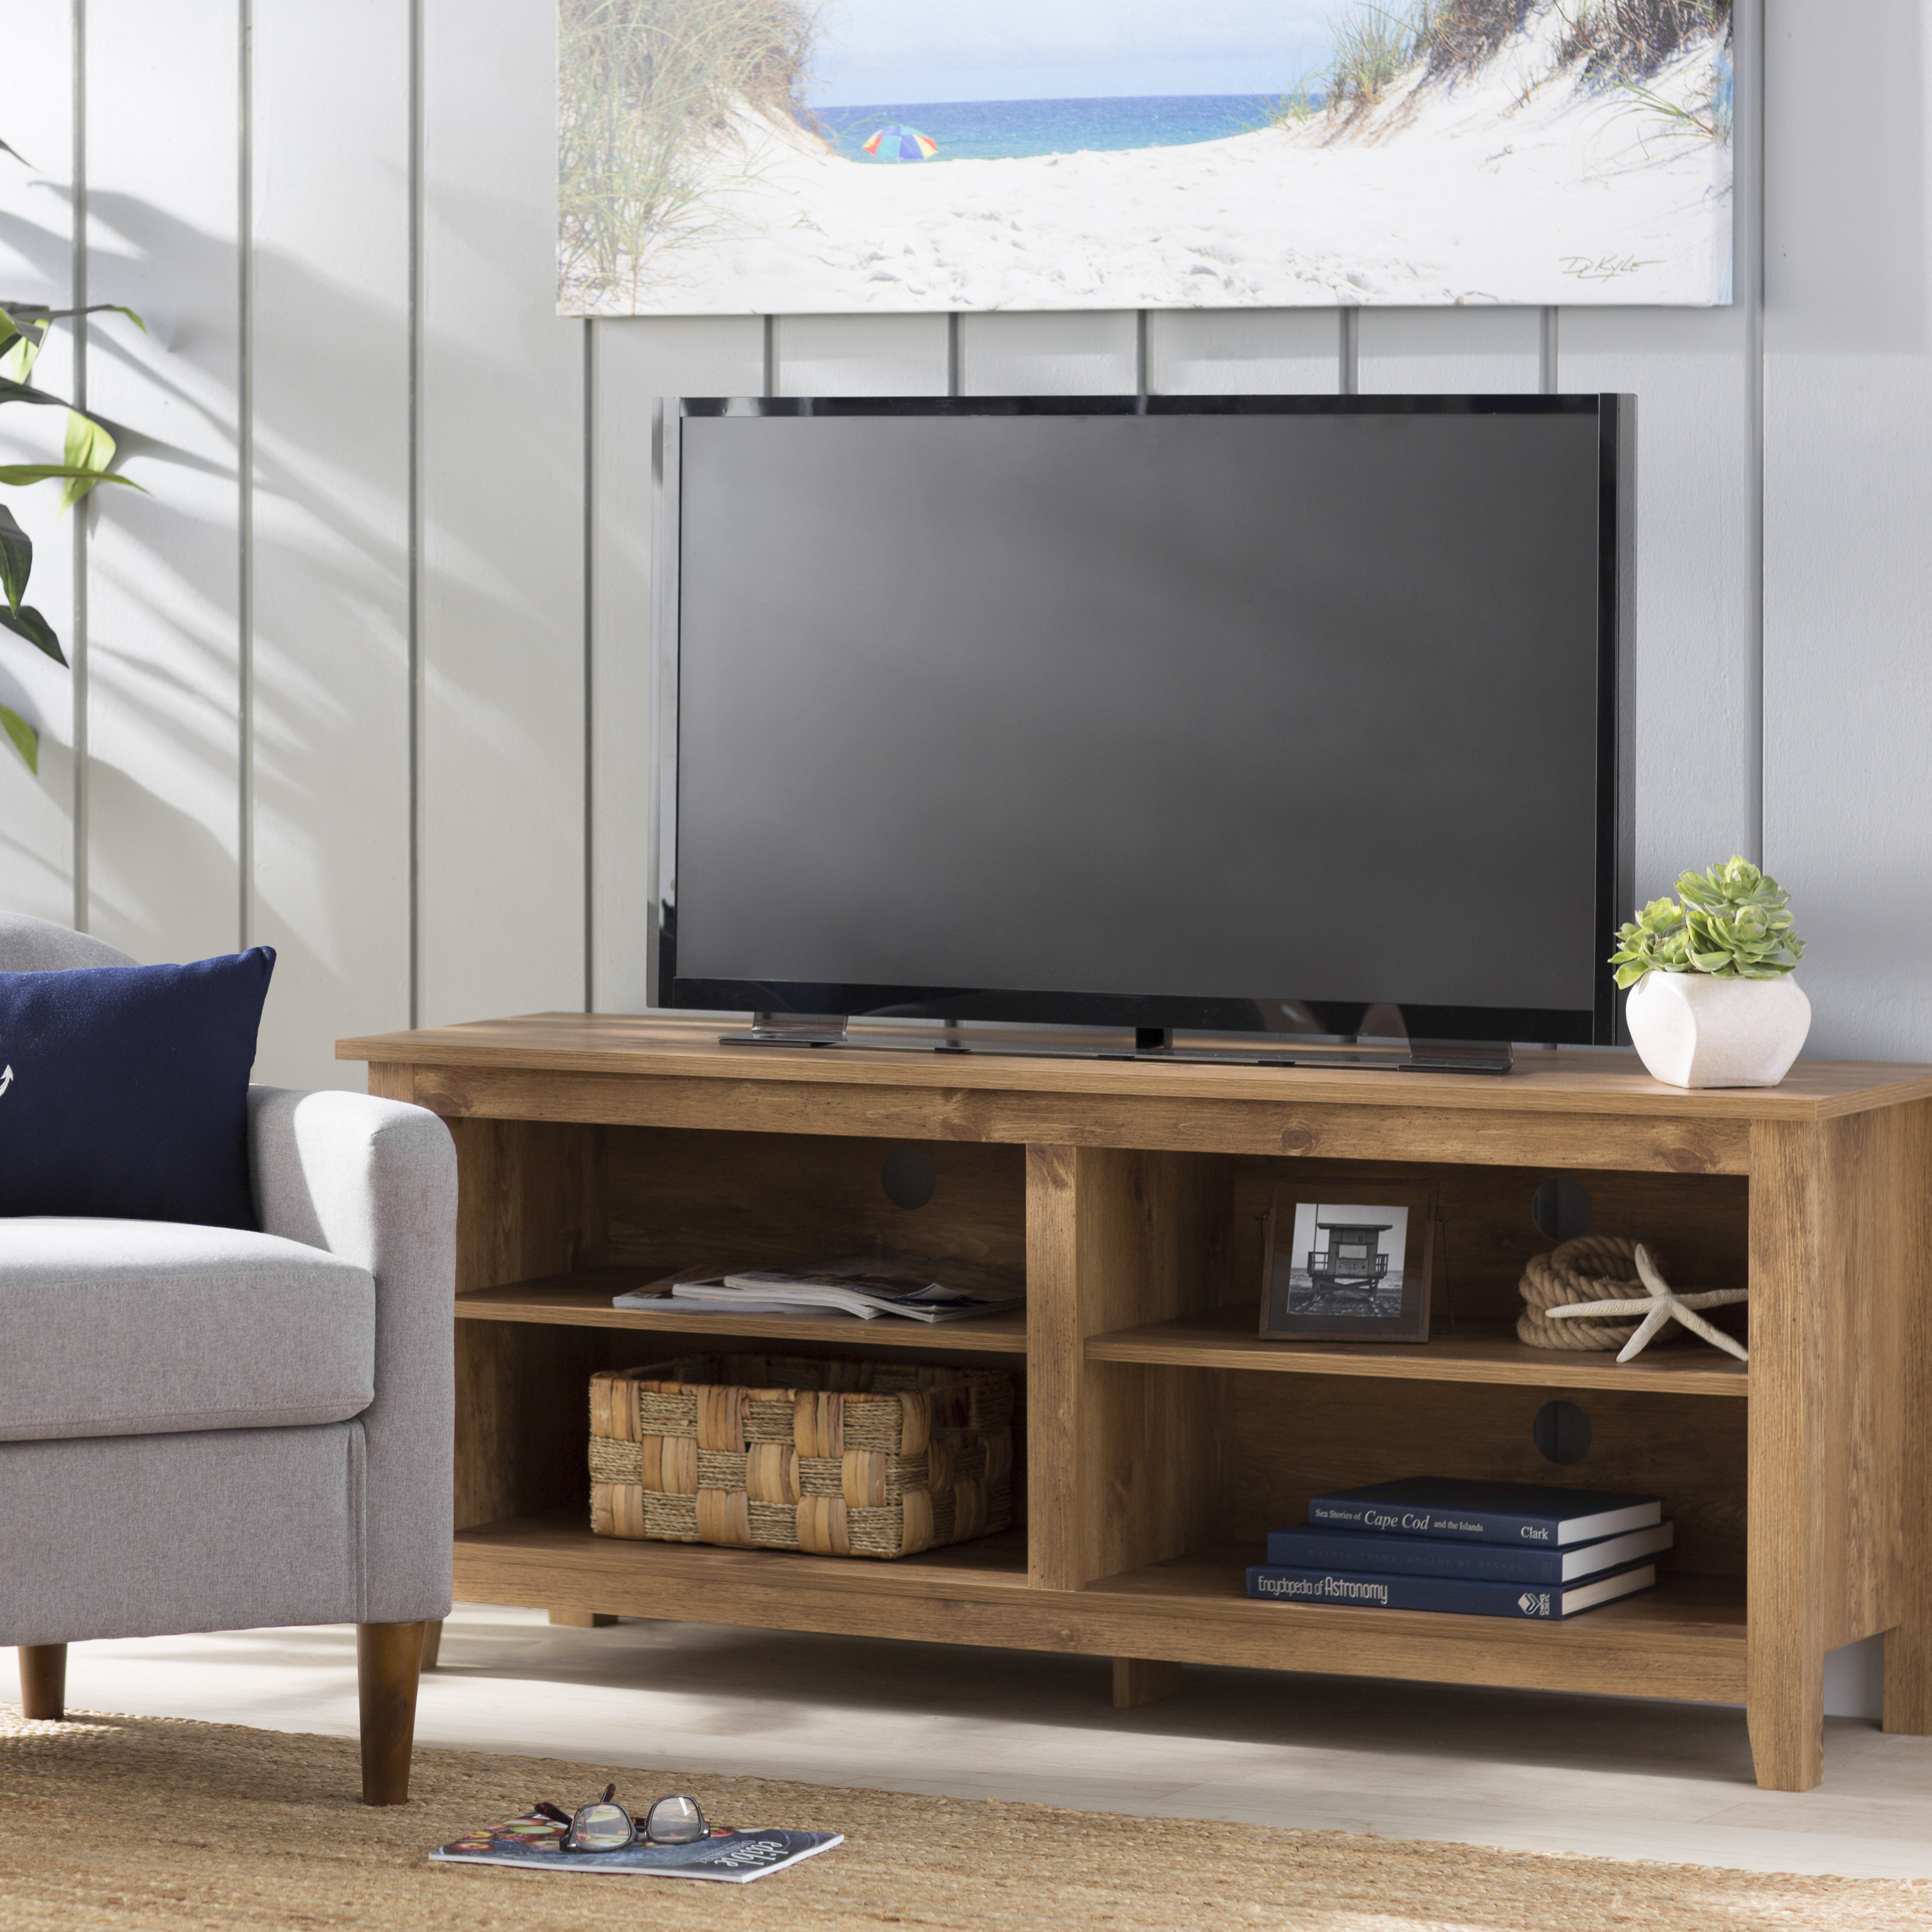 Tv Stands & Entertainment Centers You'll Love | Wayfair In Sinclair Blue 64 Inch Tv Stands (View 25 of 30)